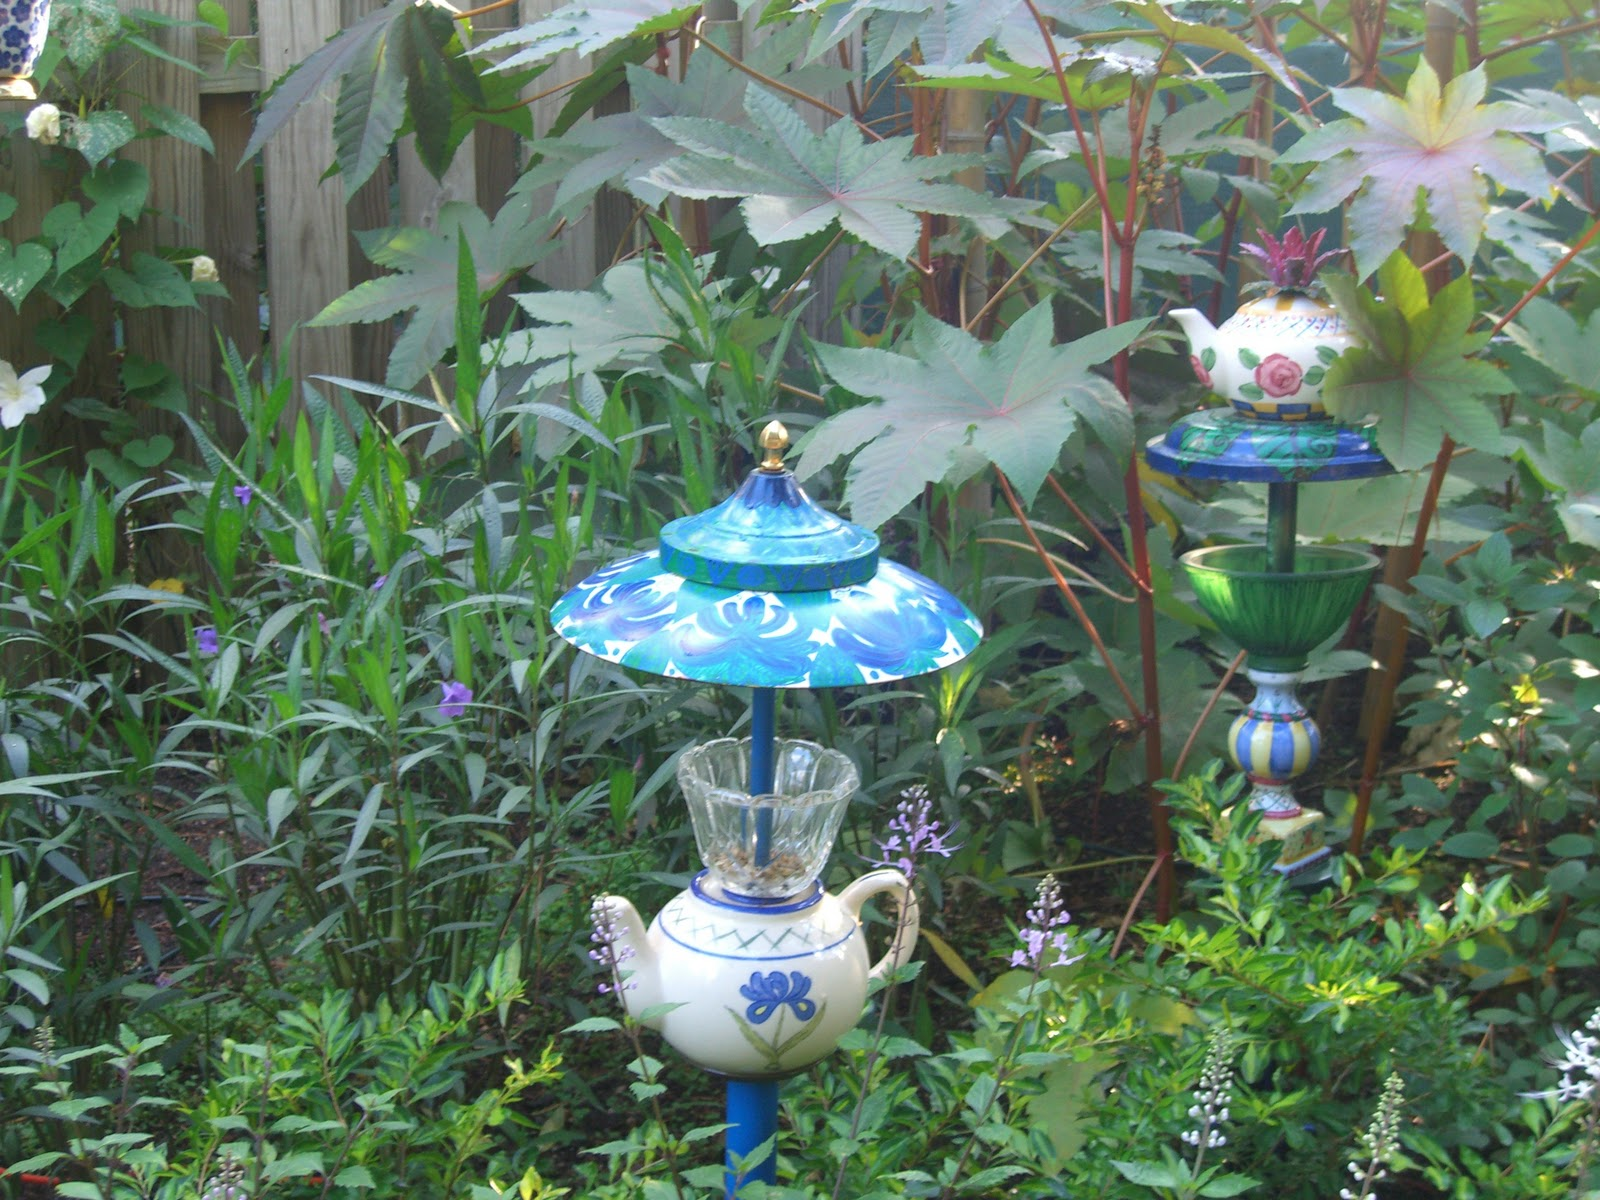 Art For The Garden: The Working Home Keeper: Garden Art Using Recycled Lamps